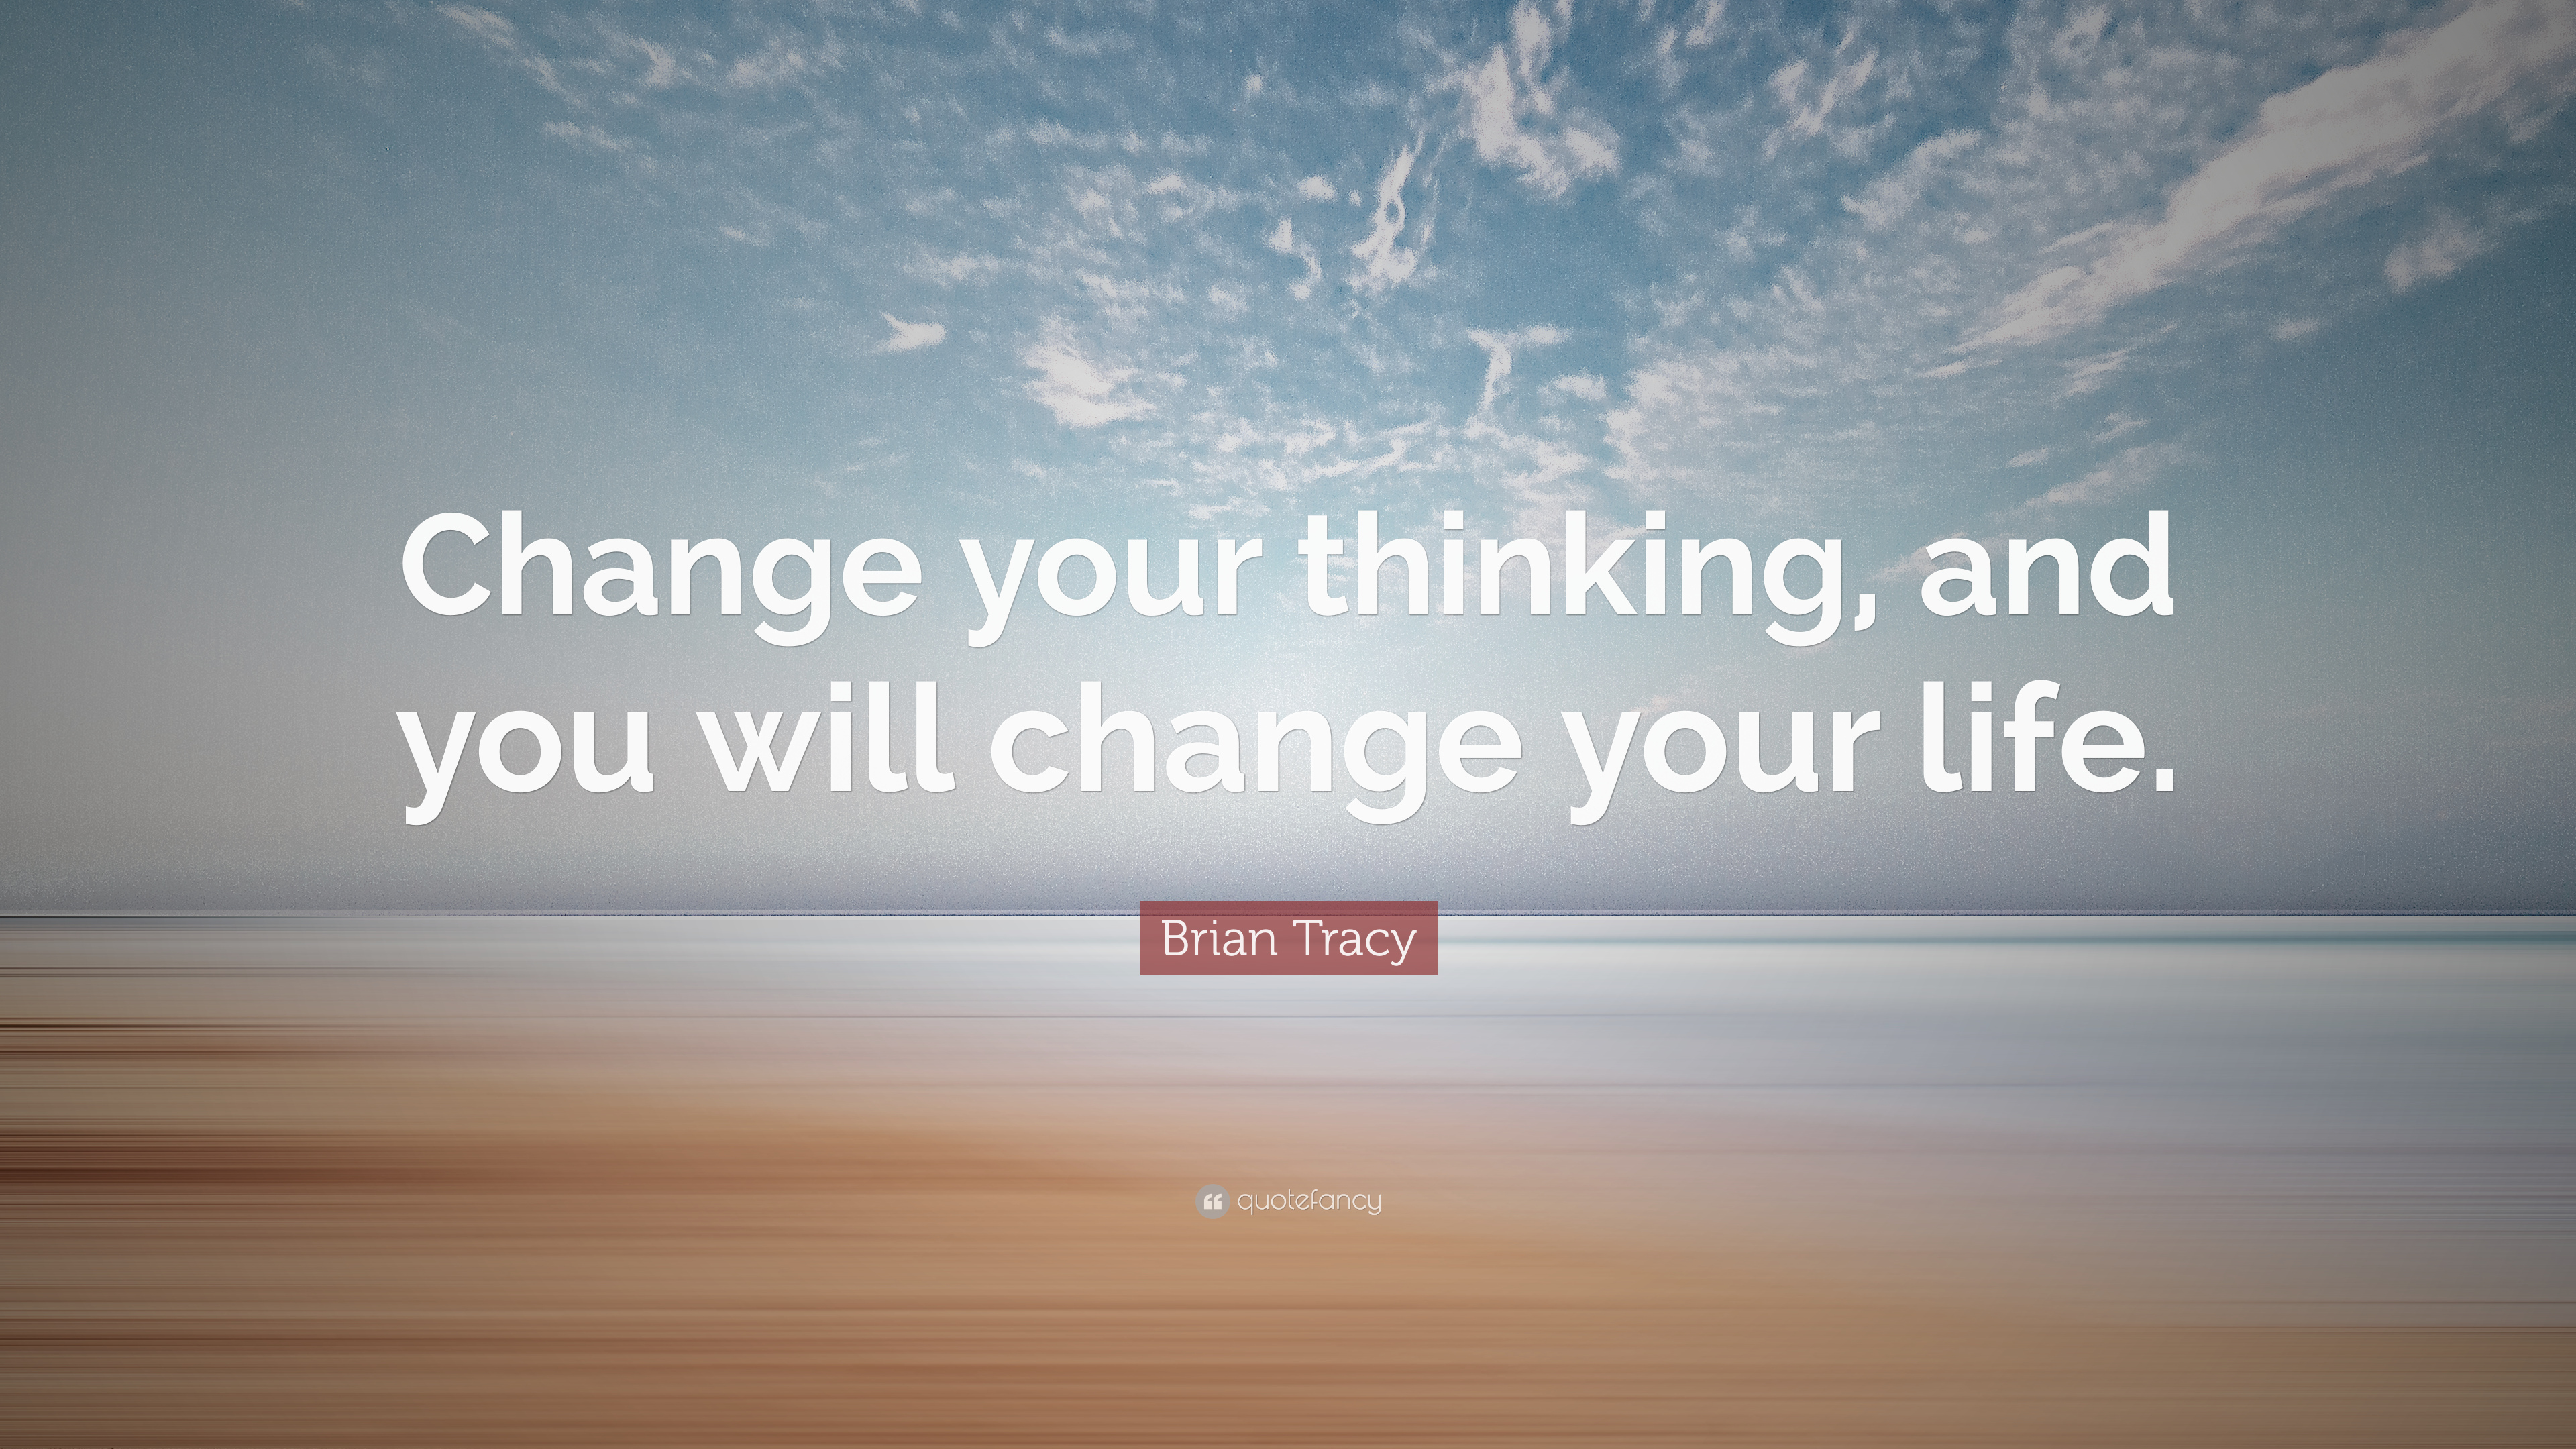 Brian Tracy Quote Change Your Thinking And You Will Change Your